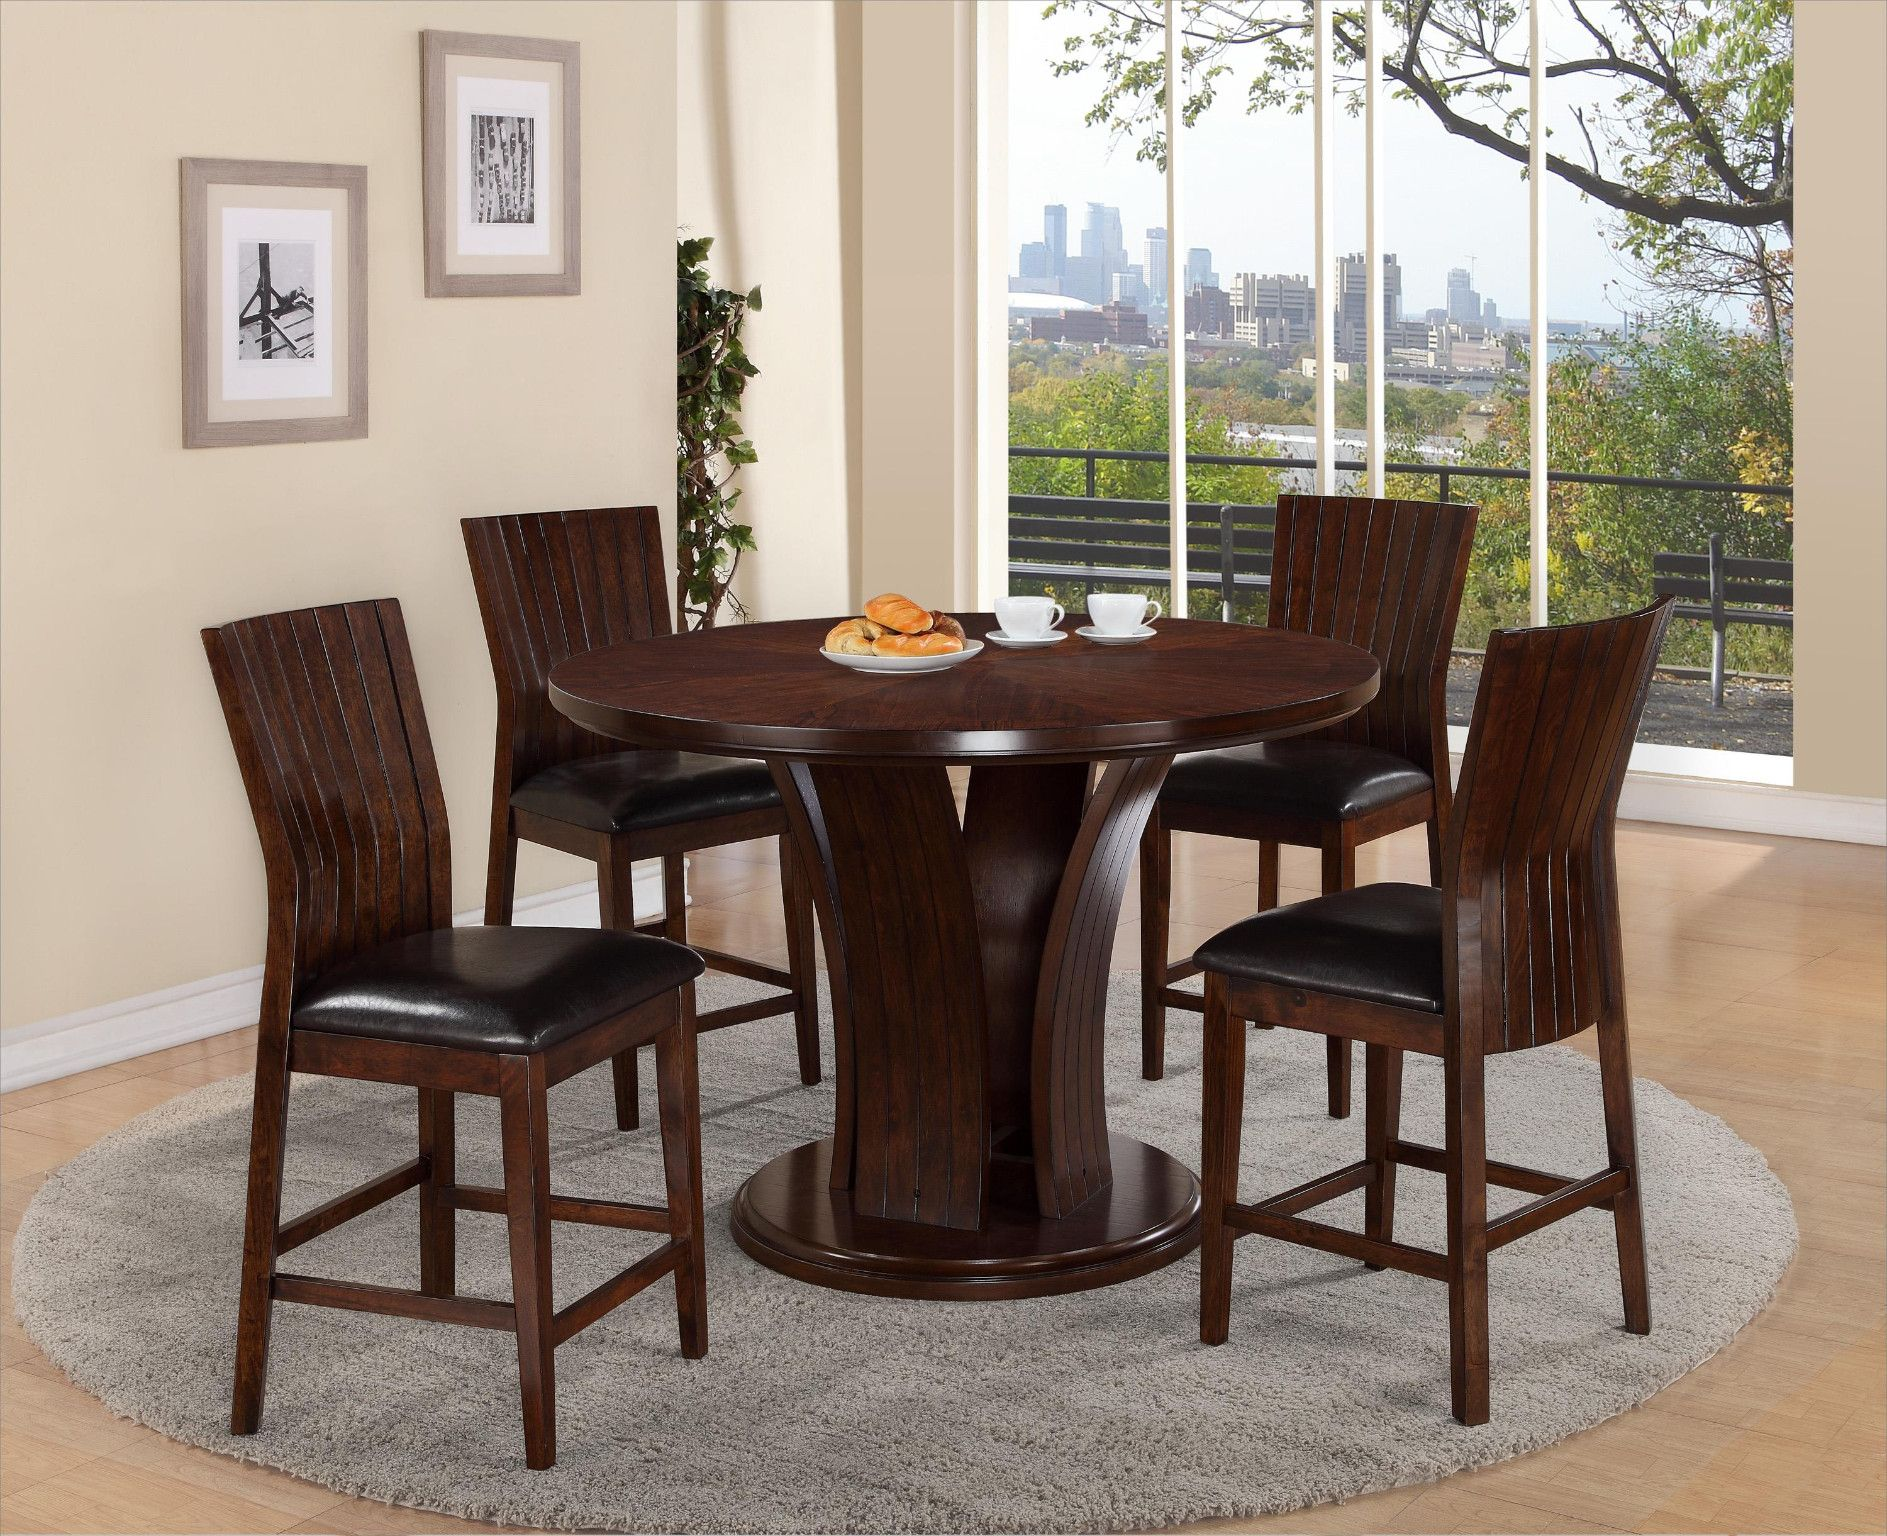 Daria Espresso Counter Height Table And 4 Chairs 79900 54 Dia X 36